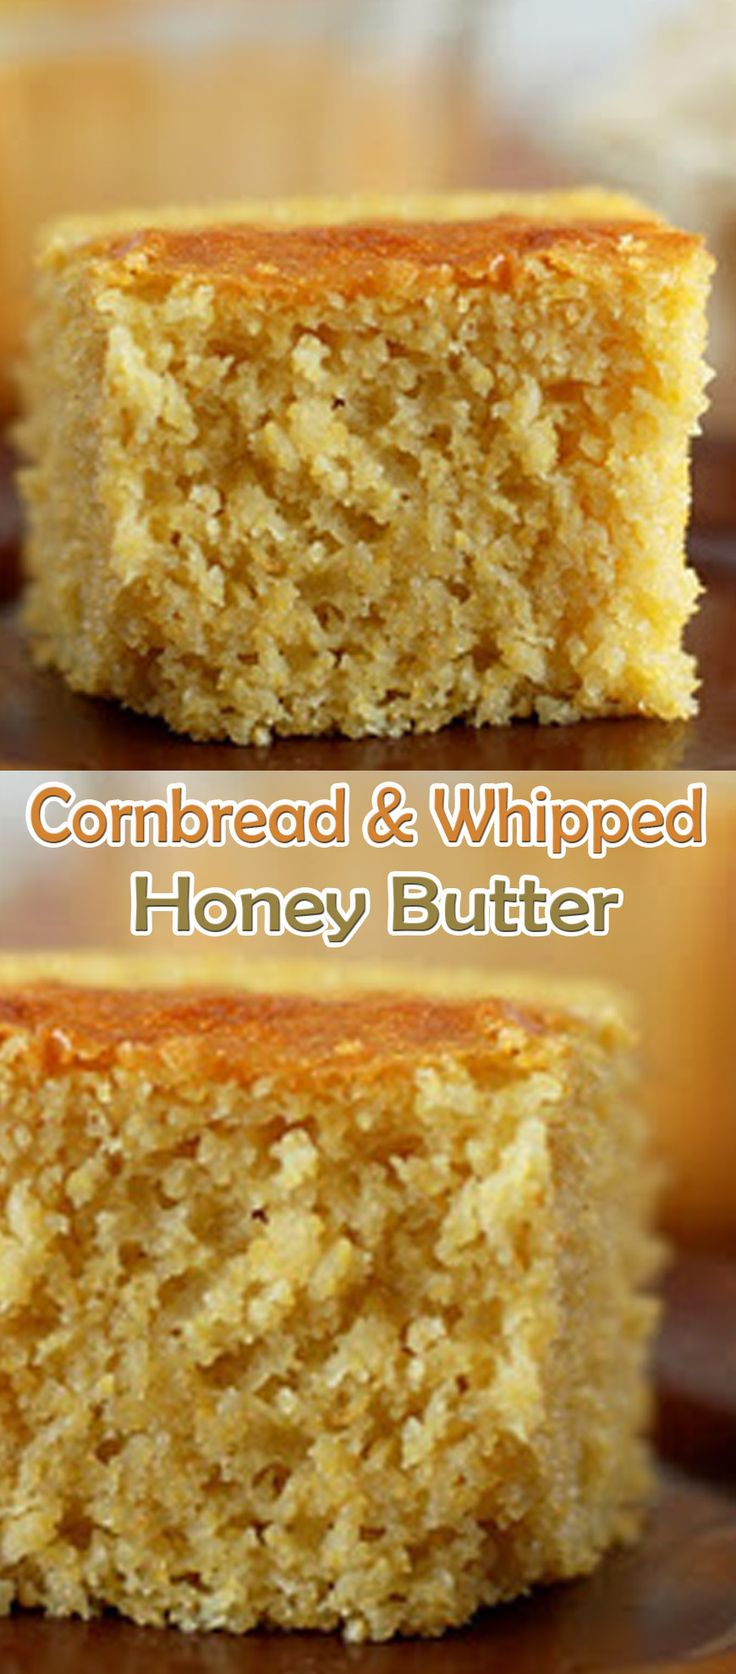 Cornbread and Whipped Honey Butter